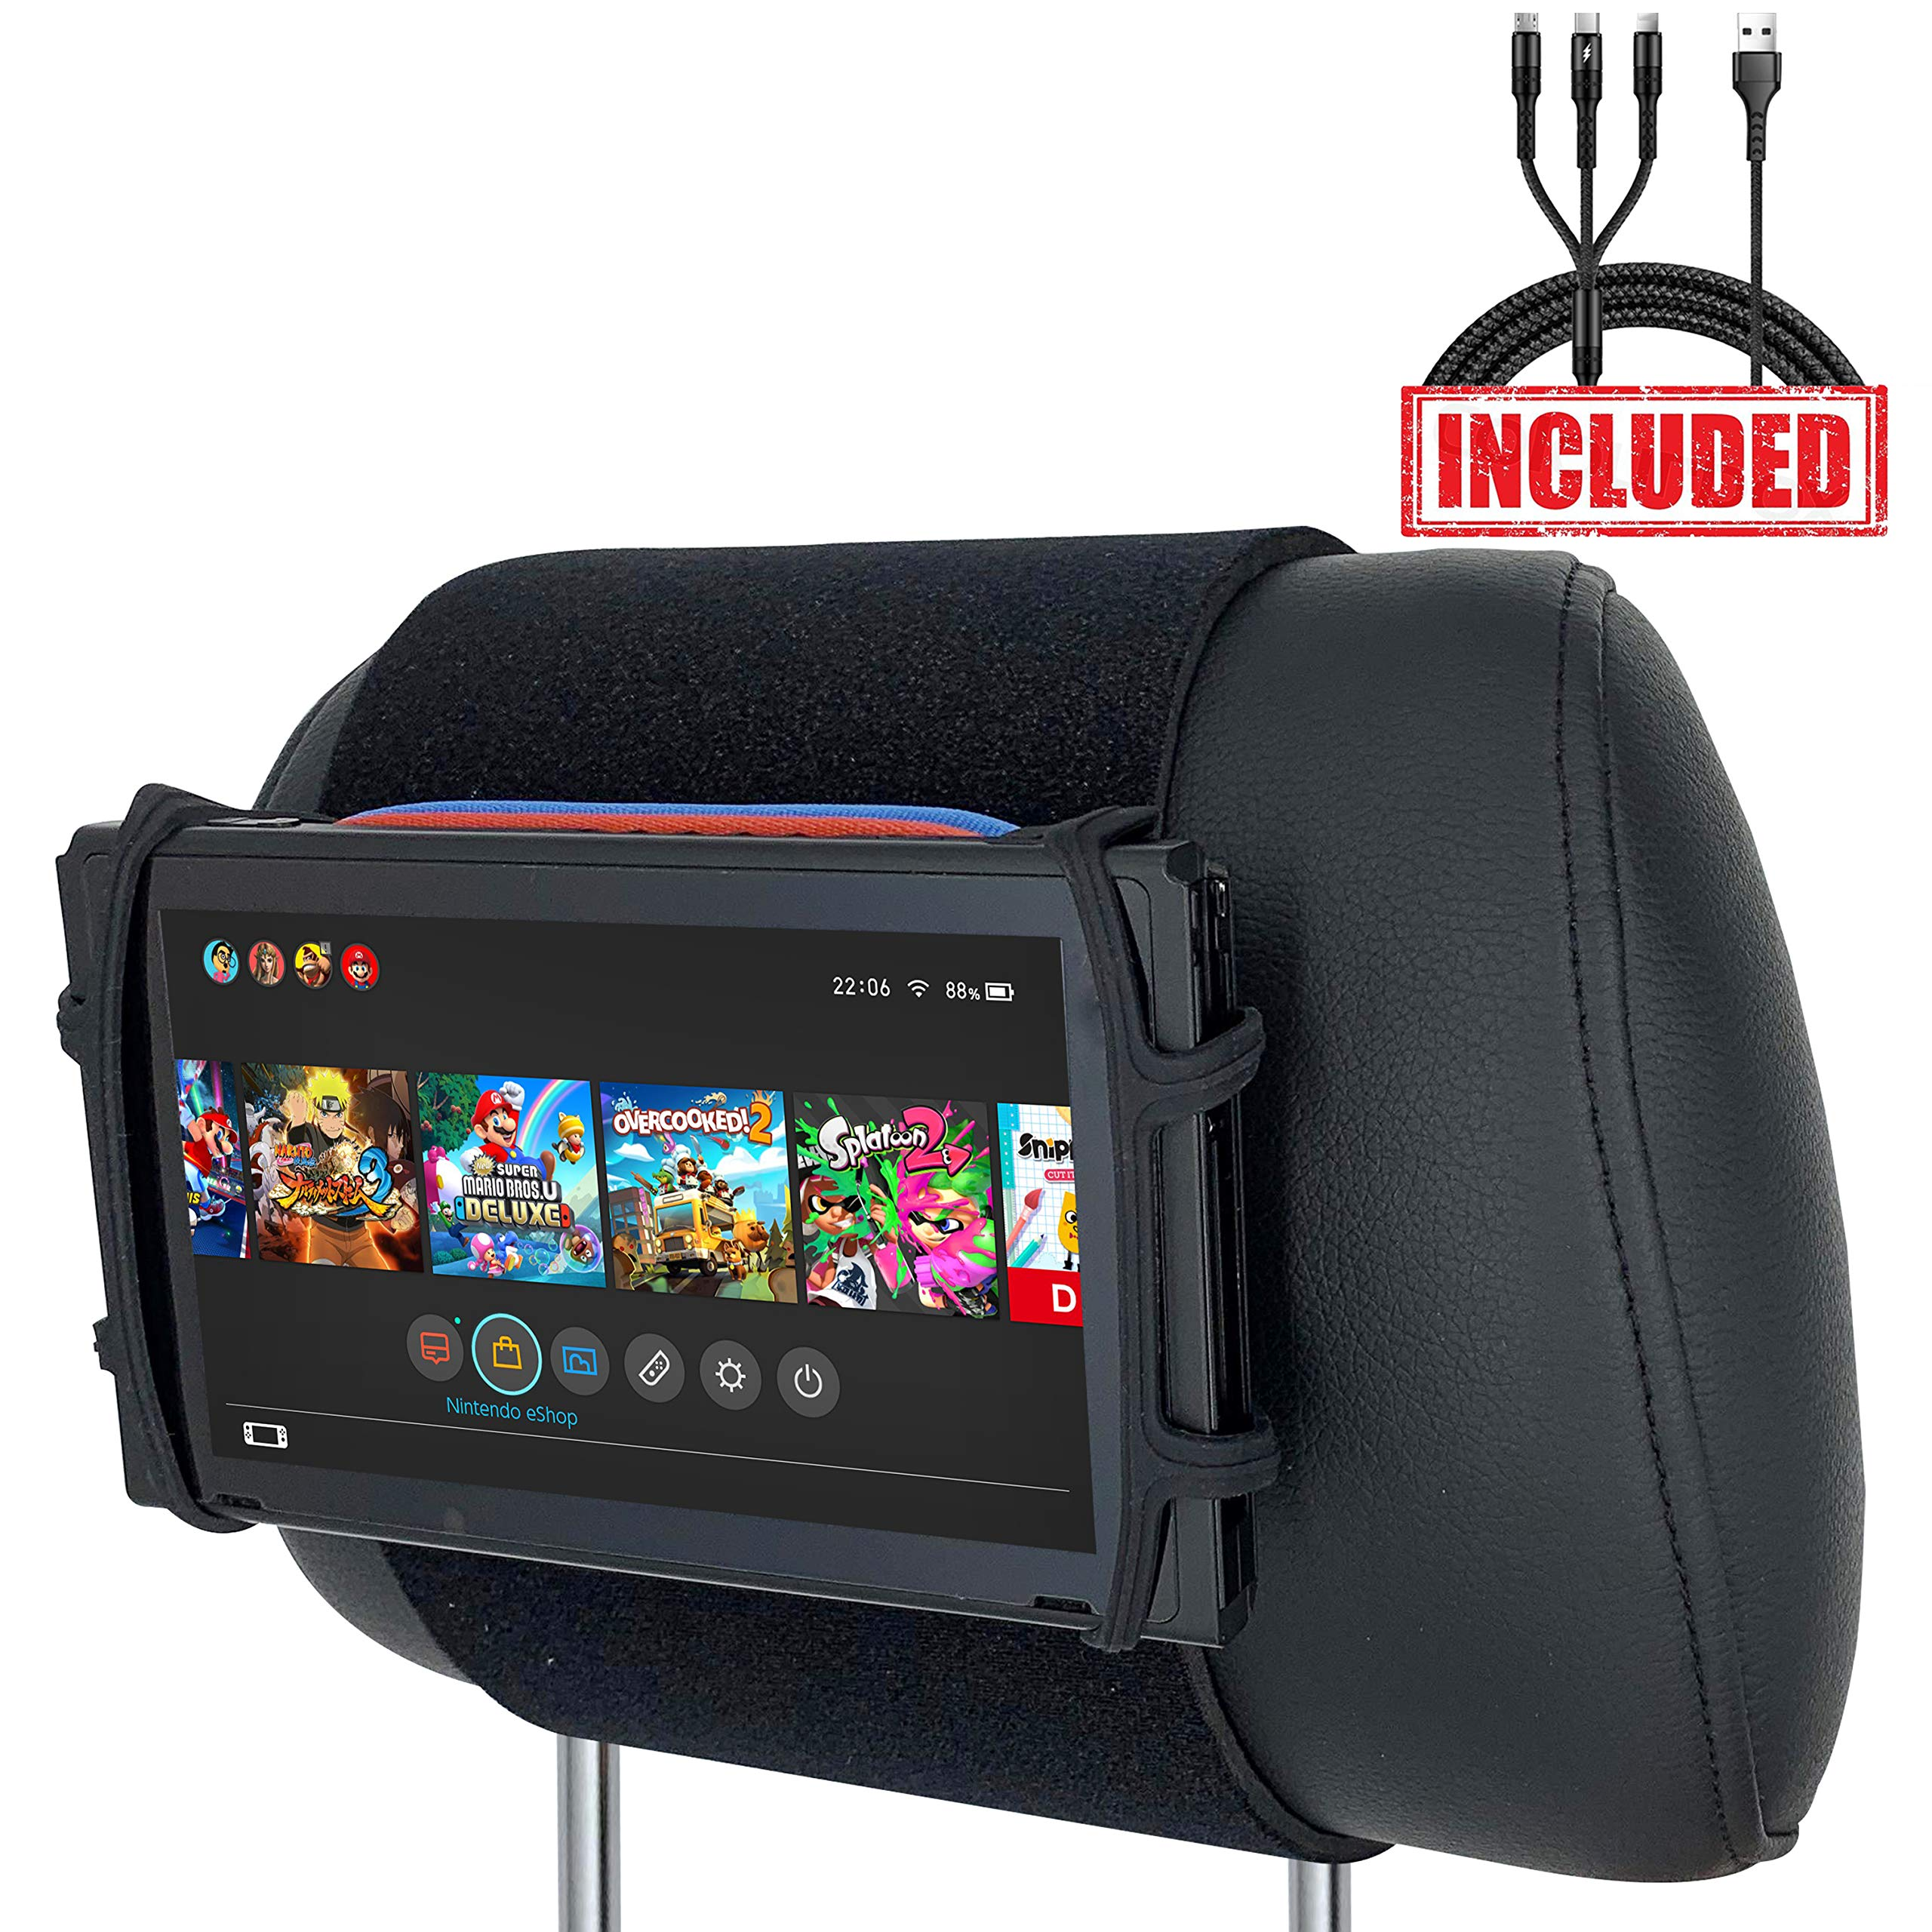 Car Headrest Mount & Silicon Holder for Nintendo Switch Console, iPad Mini, Kindle Paperwhite with 3-in-1 USB Cable (Neon Red/Blue) by LevelHike